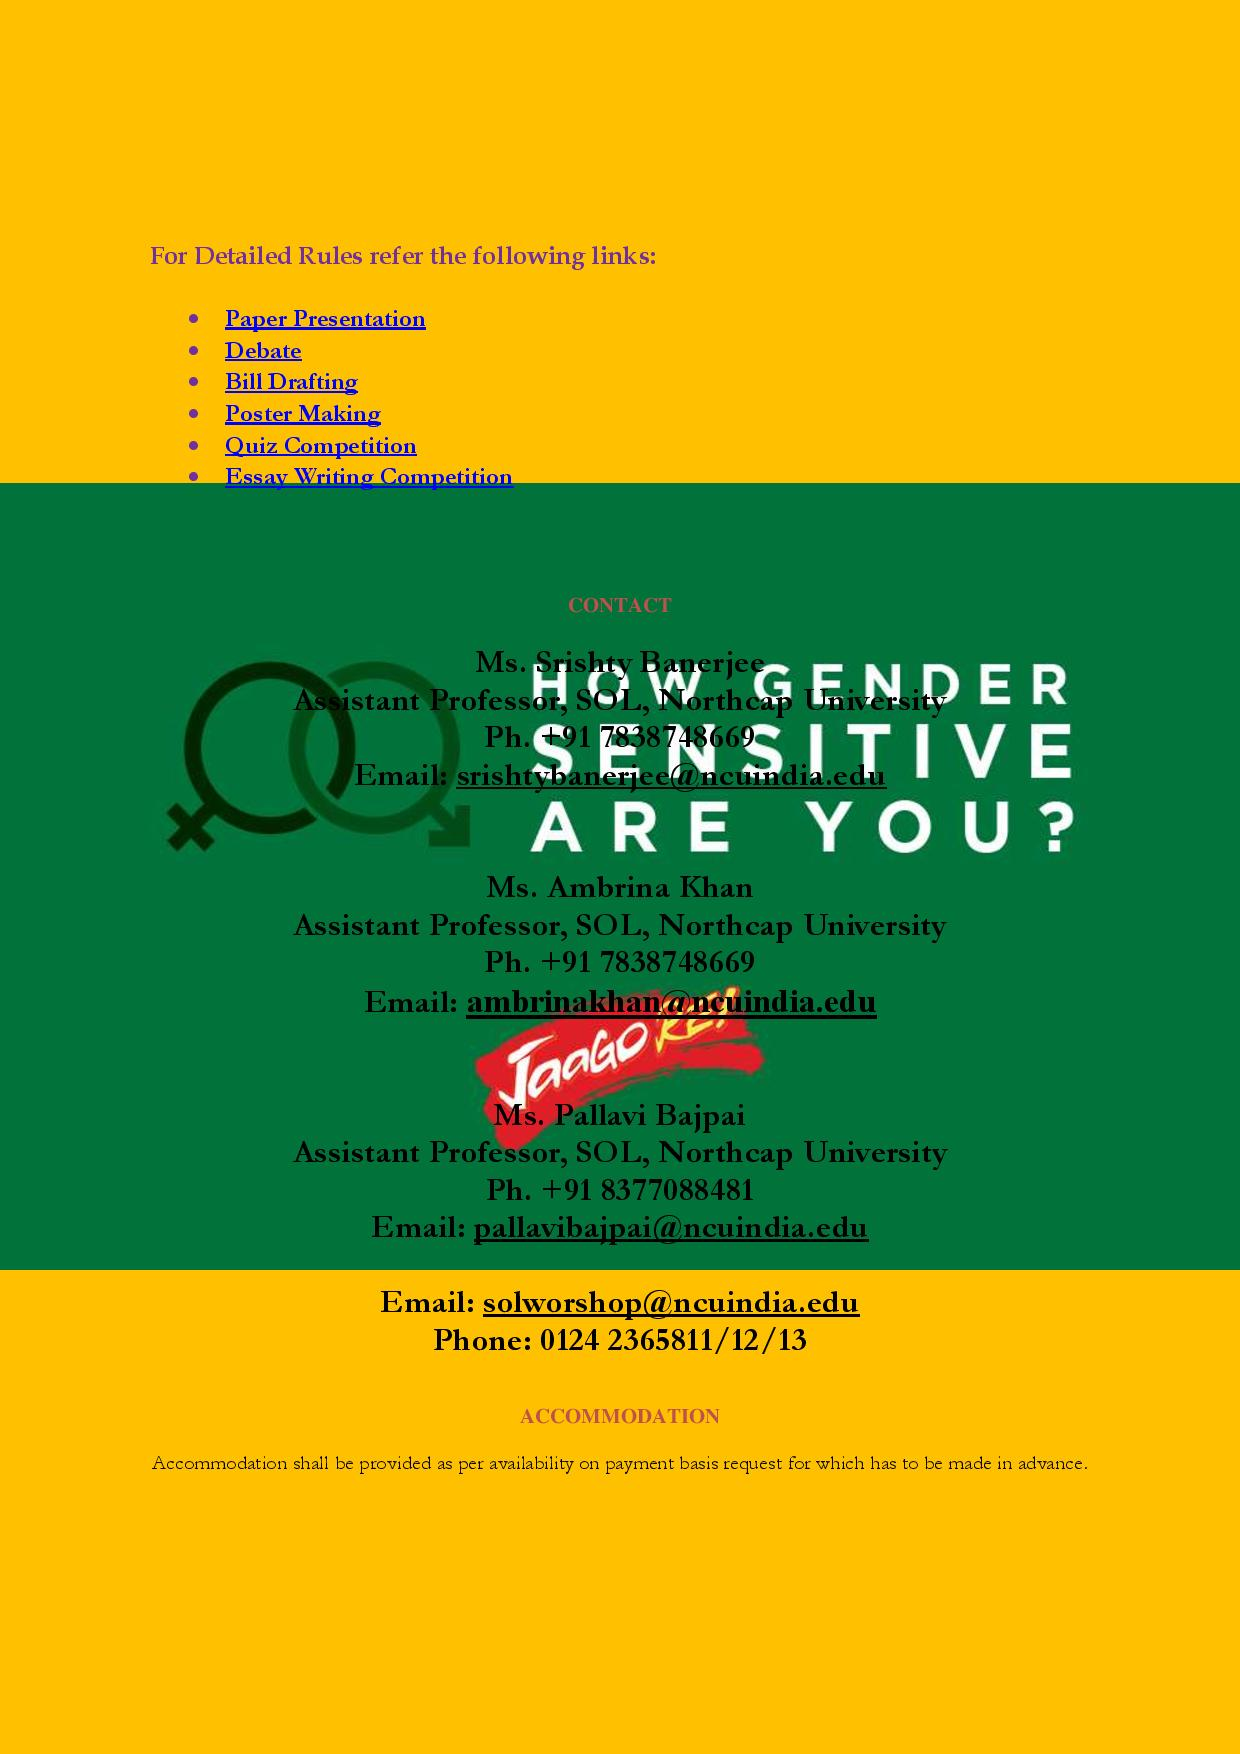 School of Law, Northcap University's Workshop on Equality, Justice and Gender Sensitization